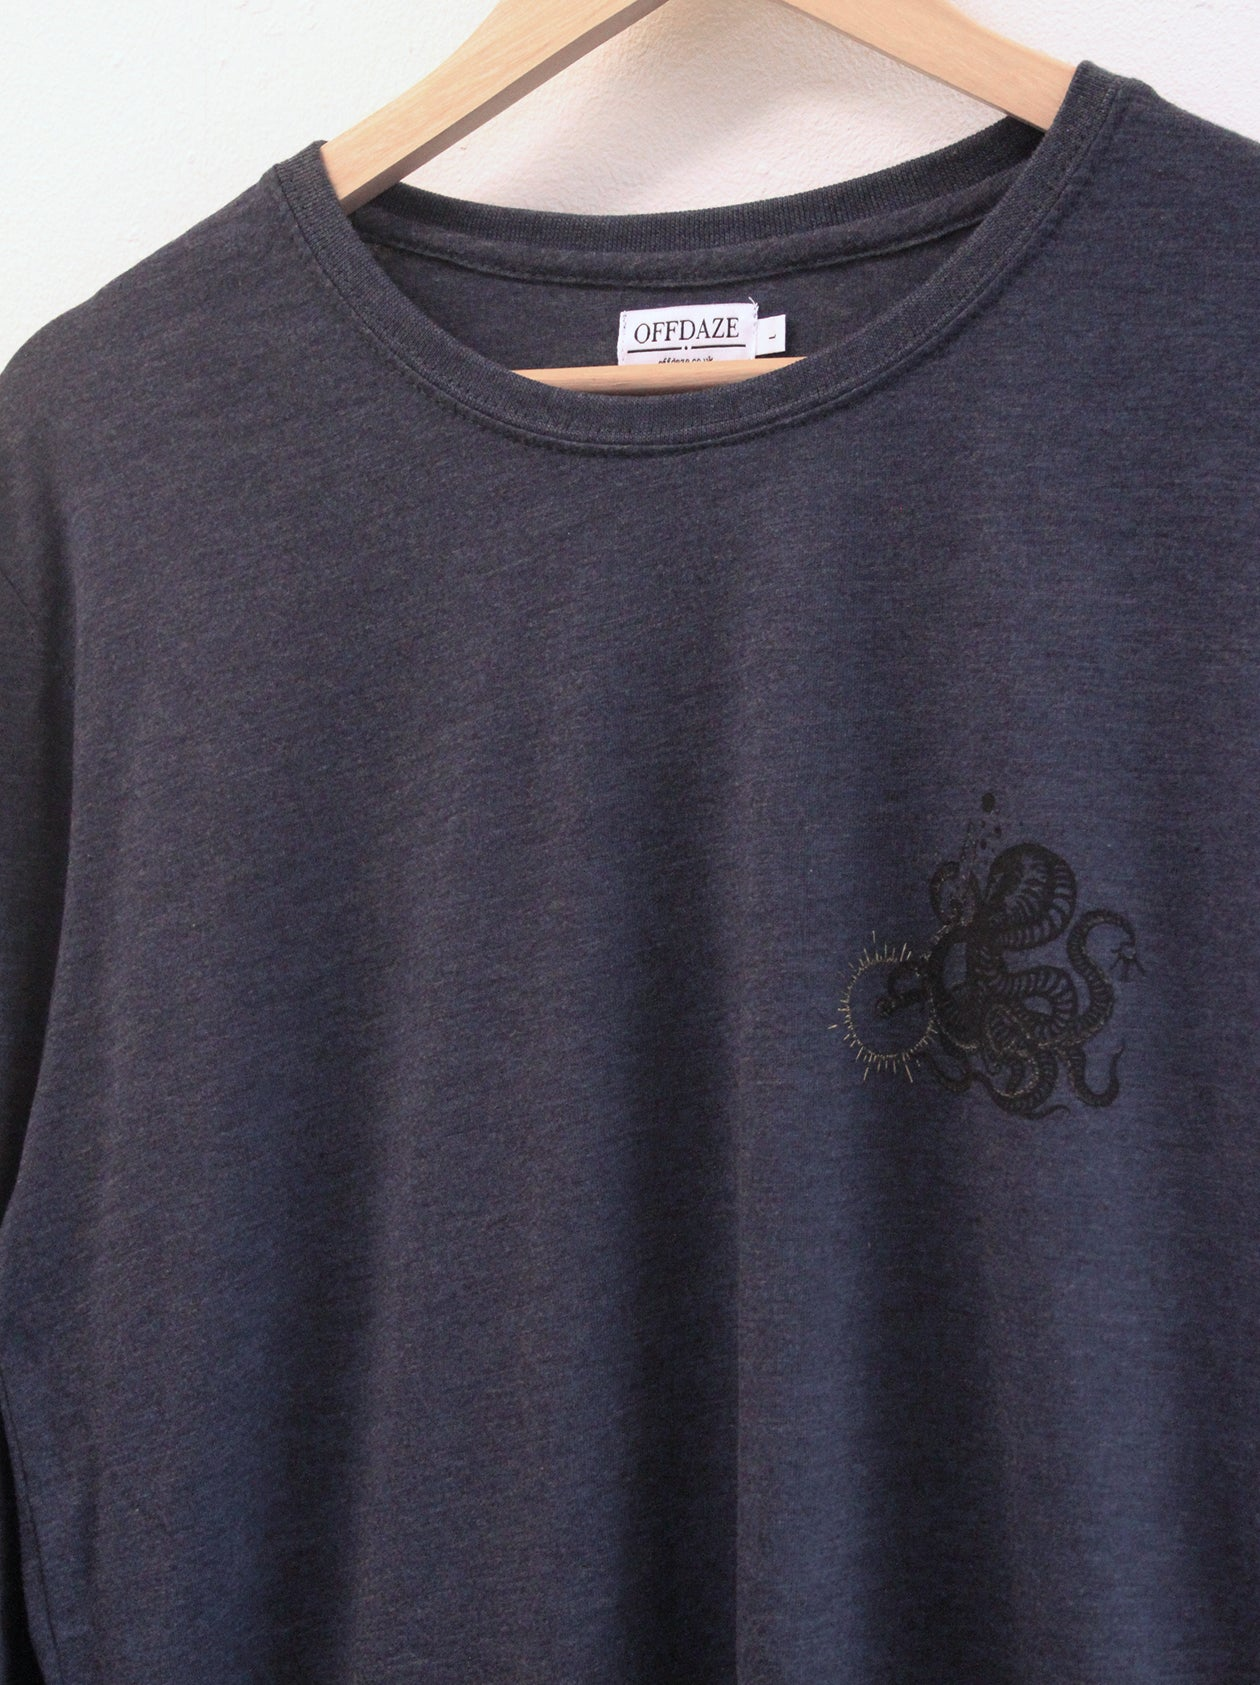 Image of Tentakill Long Sleeve T-Shirt